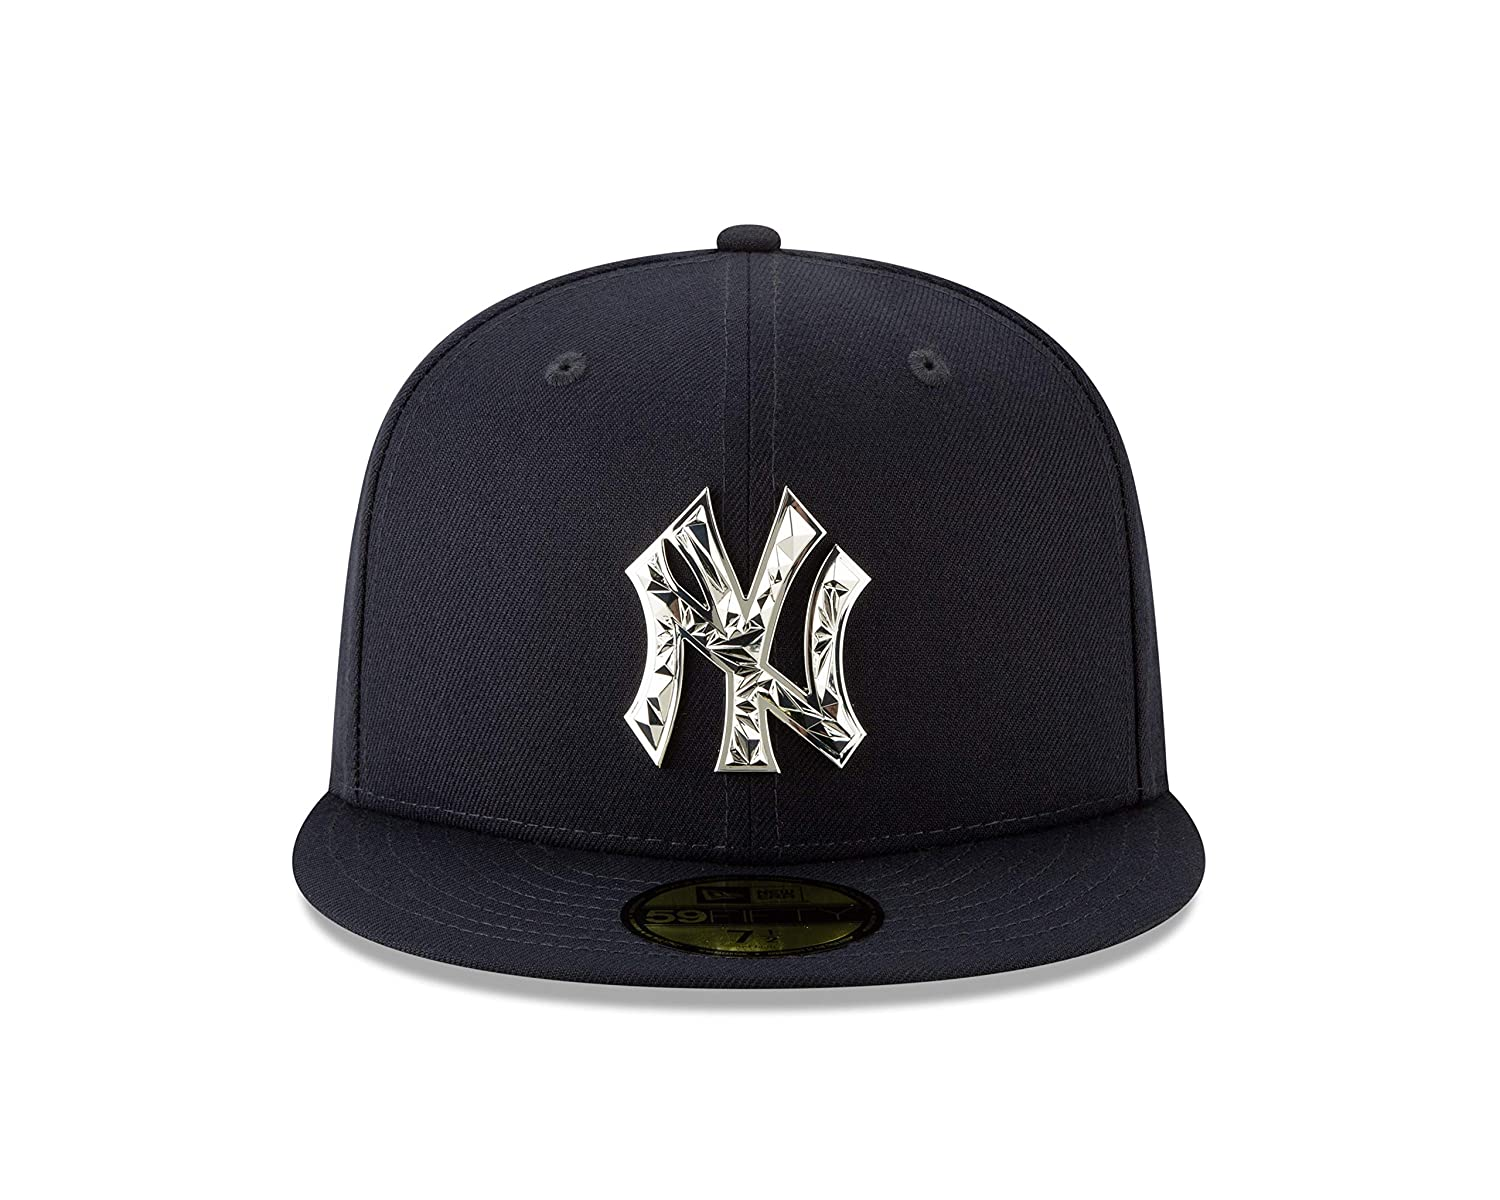 21c36389 Amazon.com: New York Yankees New Era Fractured Metal Fitted 59Fifty MLB Hat  - Navy/Silver (7 1/4): Clothing